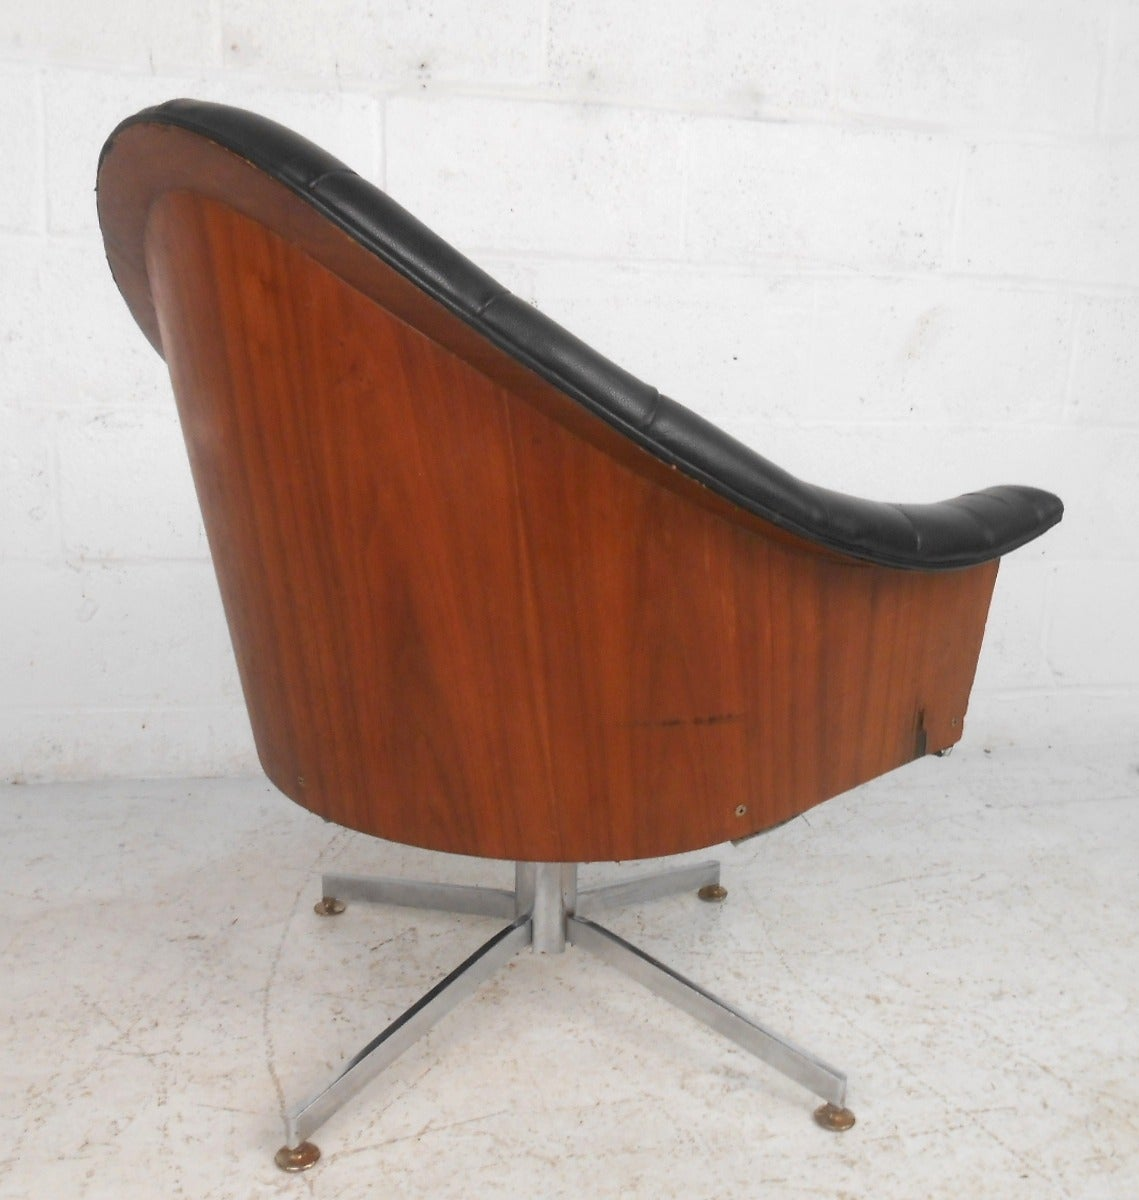 midcentury modern adrian pearsall style tufted swivel desk chair  - midcentury modern adrian pearsall style tufted swivel desk chair